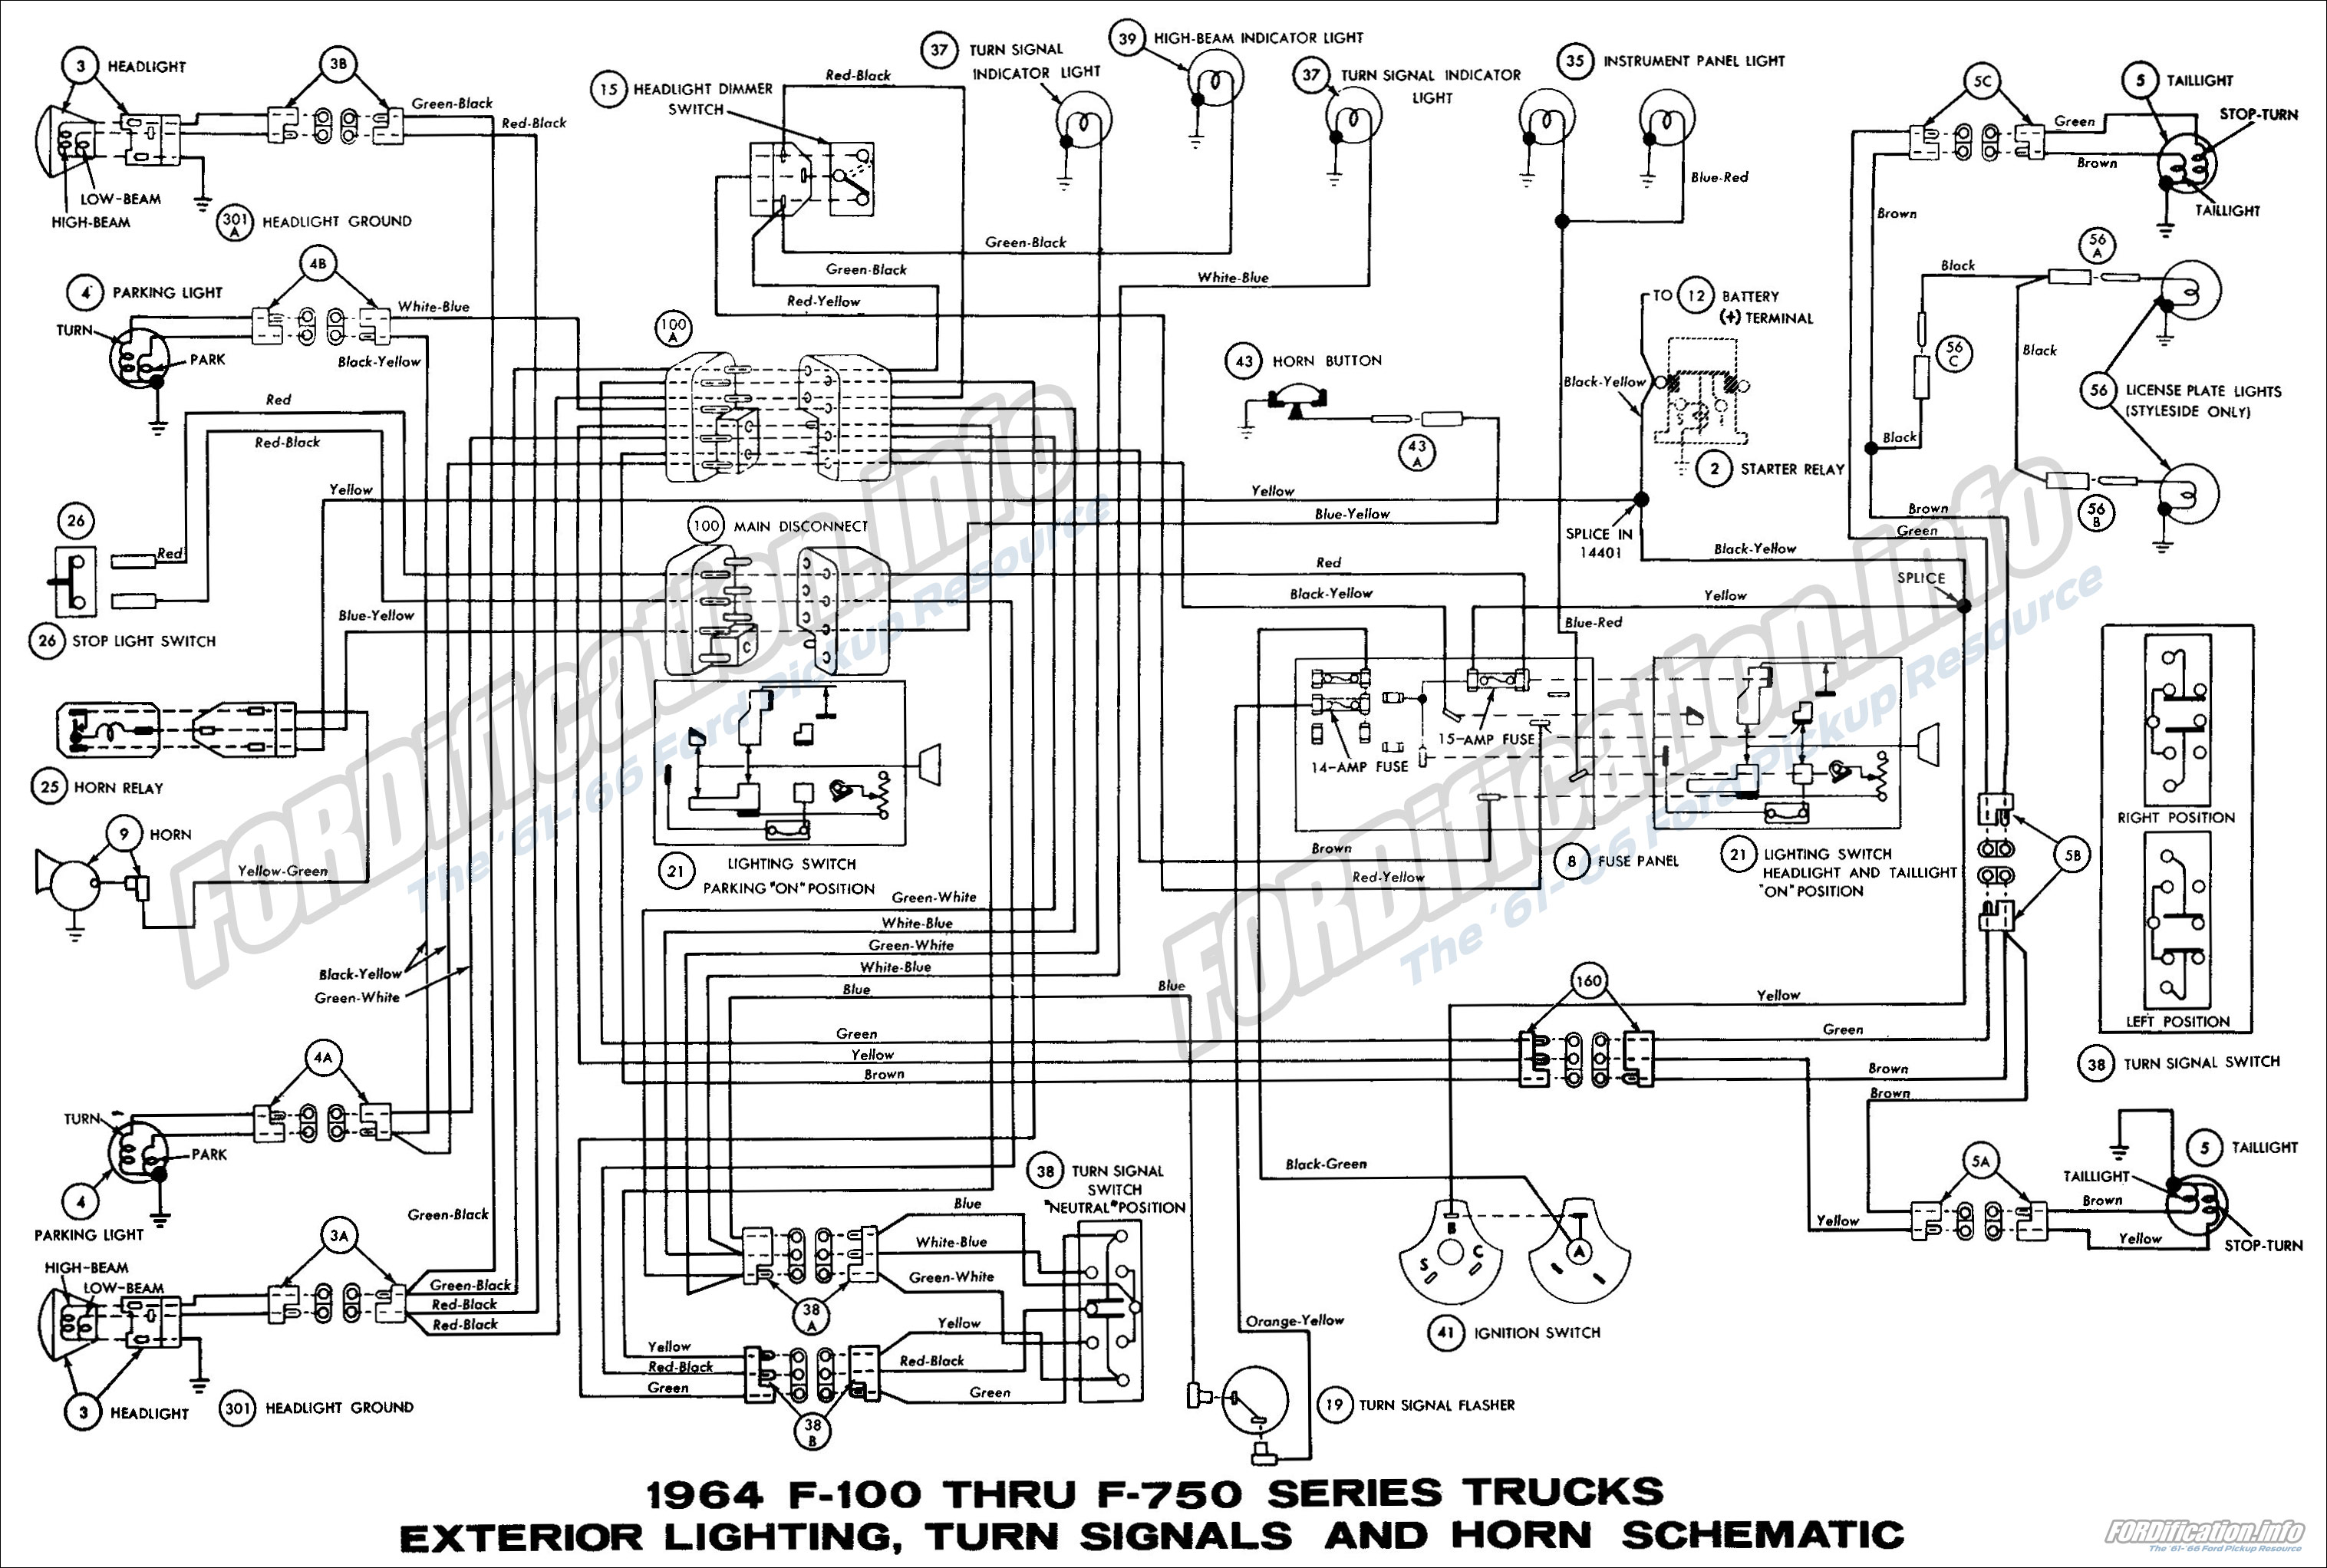 1964 Ford Truck Wiring Diagrams Fordification Info The '61 '66 2006 Ford Truck Wiring Diagram 2004 Ford F 650 Wiring Diagrams On 1964 F100 Thru F750 Series Trucks Exterior Lighting, Turn Signals